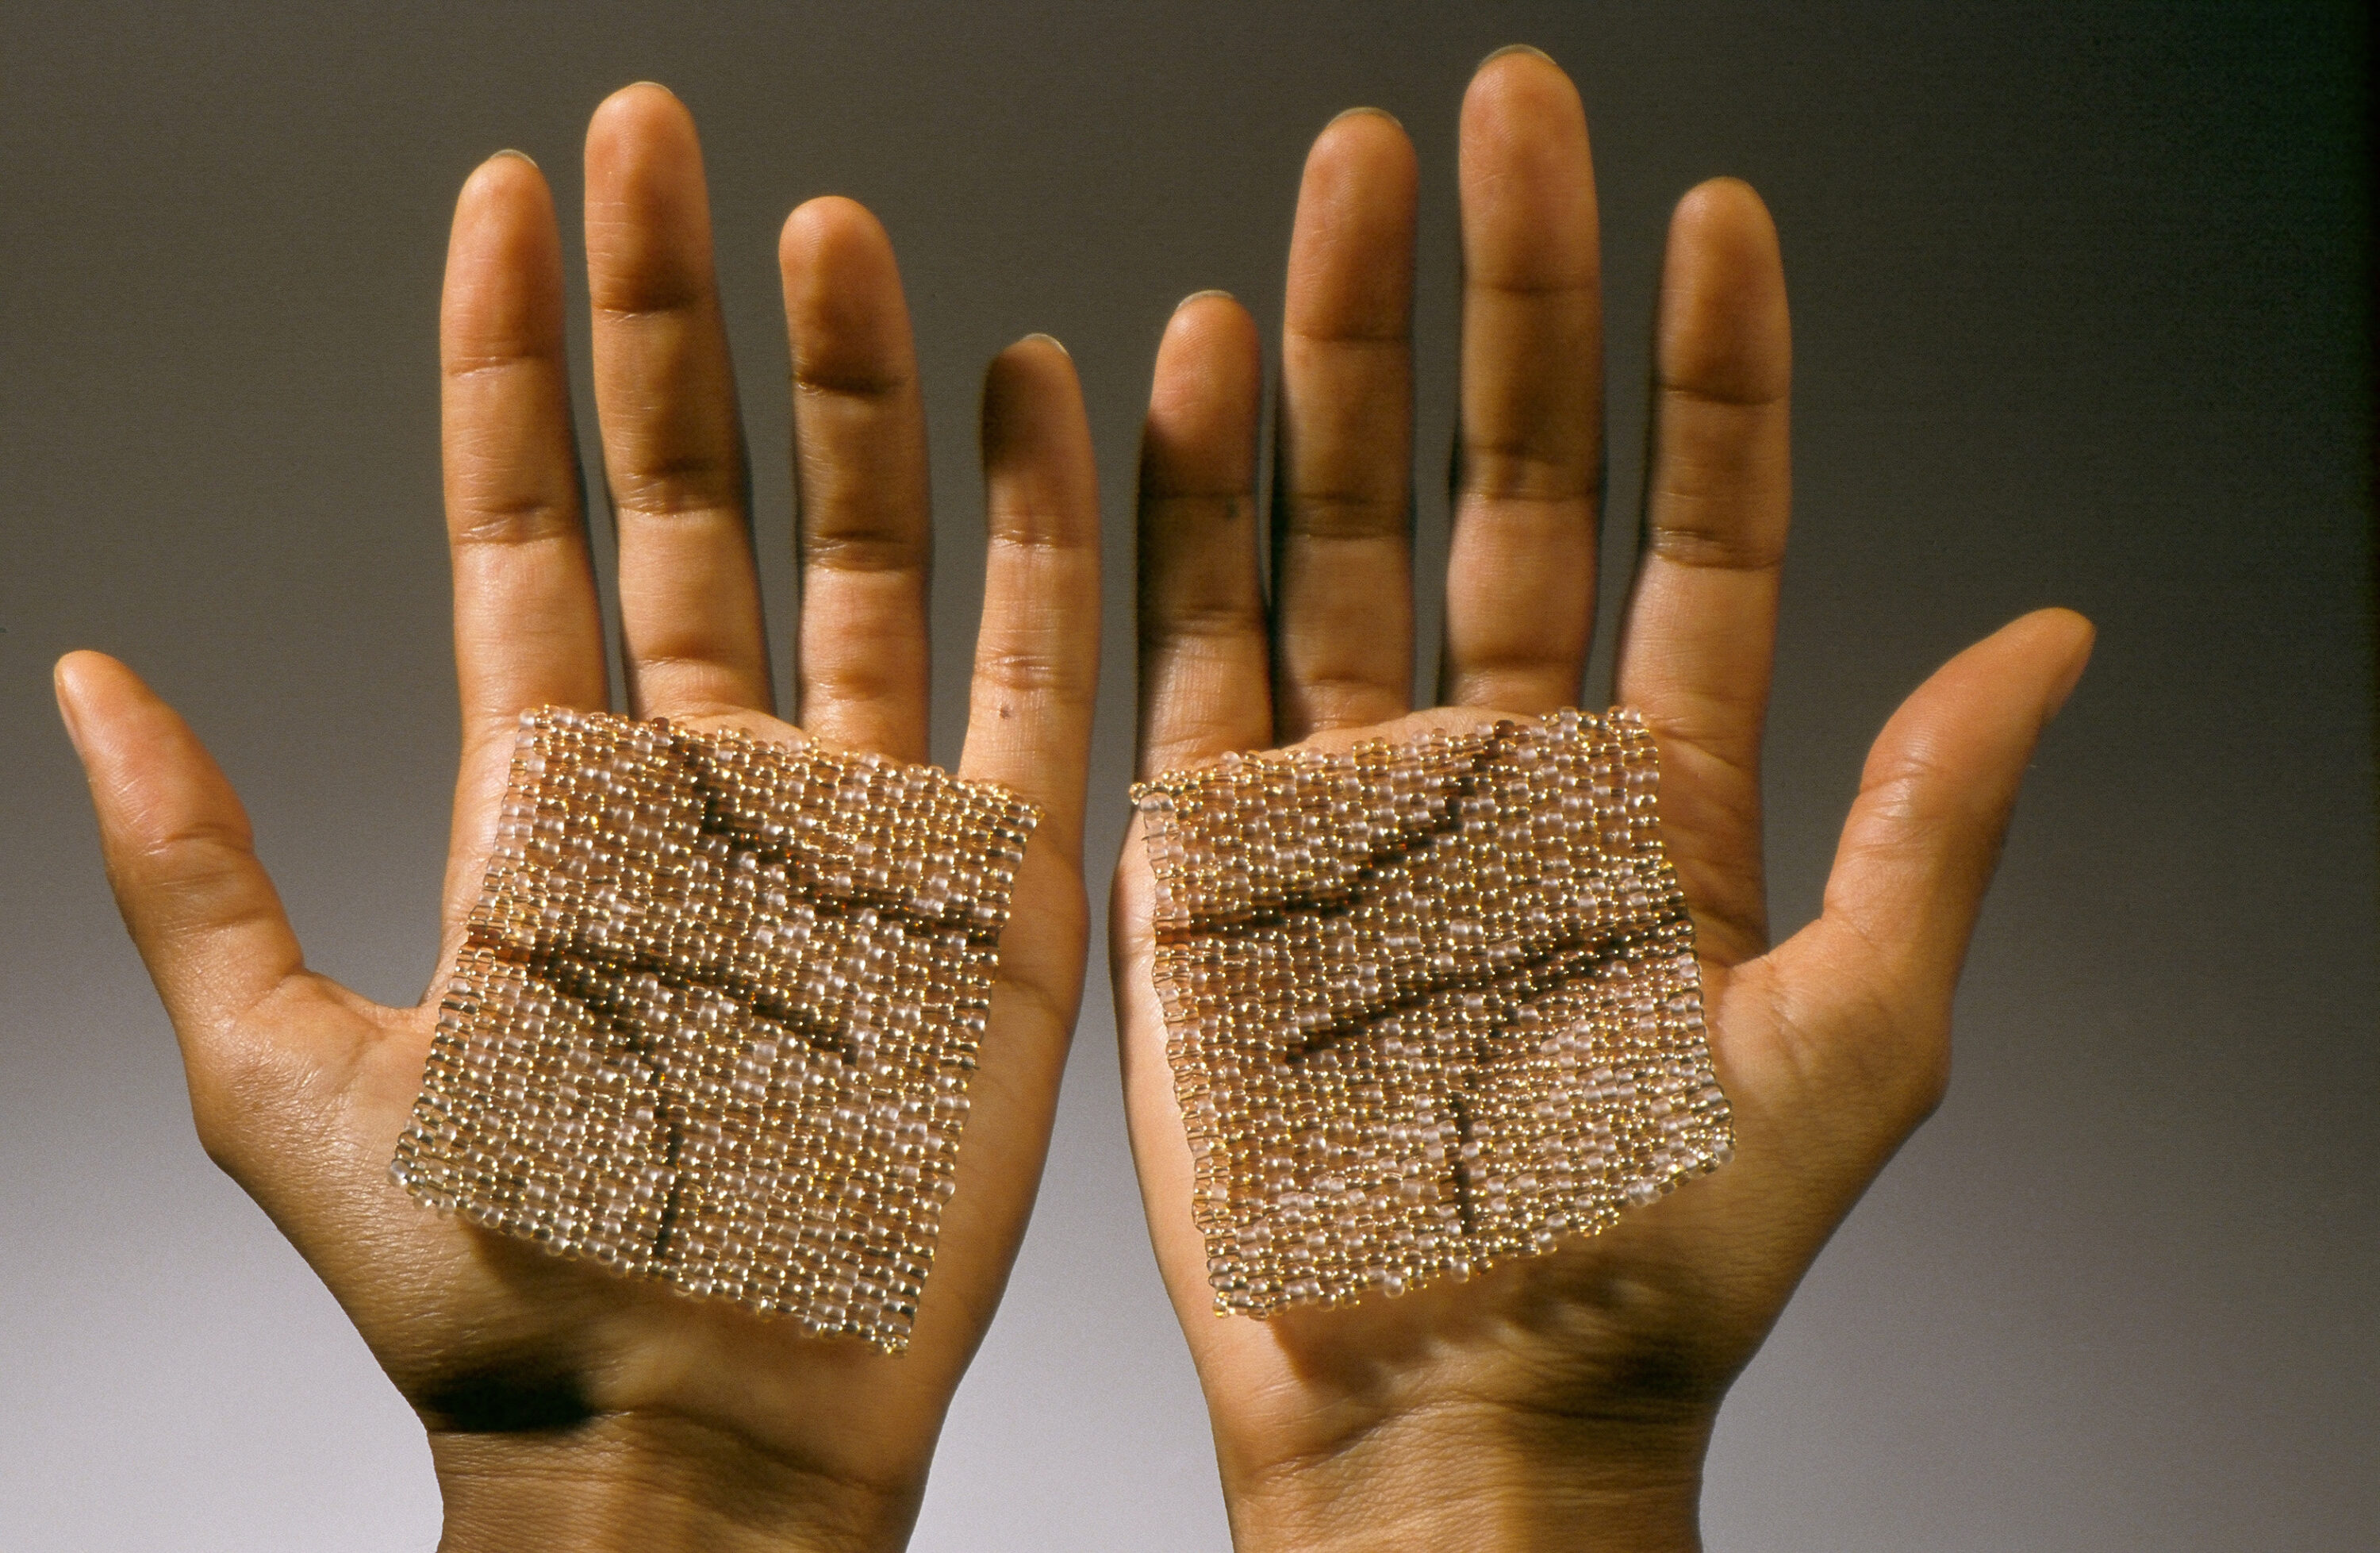 A pair of medium-dark skinned hands held up next to each other, palms up. Resting on each palm is a square made of glass beads in colors matching the skin. Dark brown lines on the squares map directly over the natural palm creases of the hands.